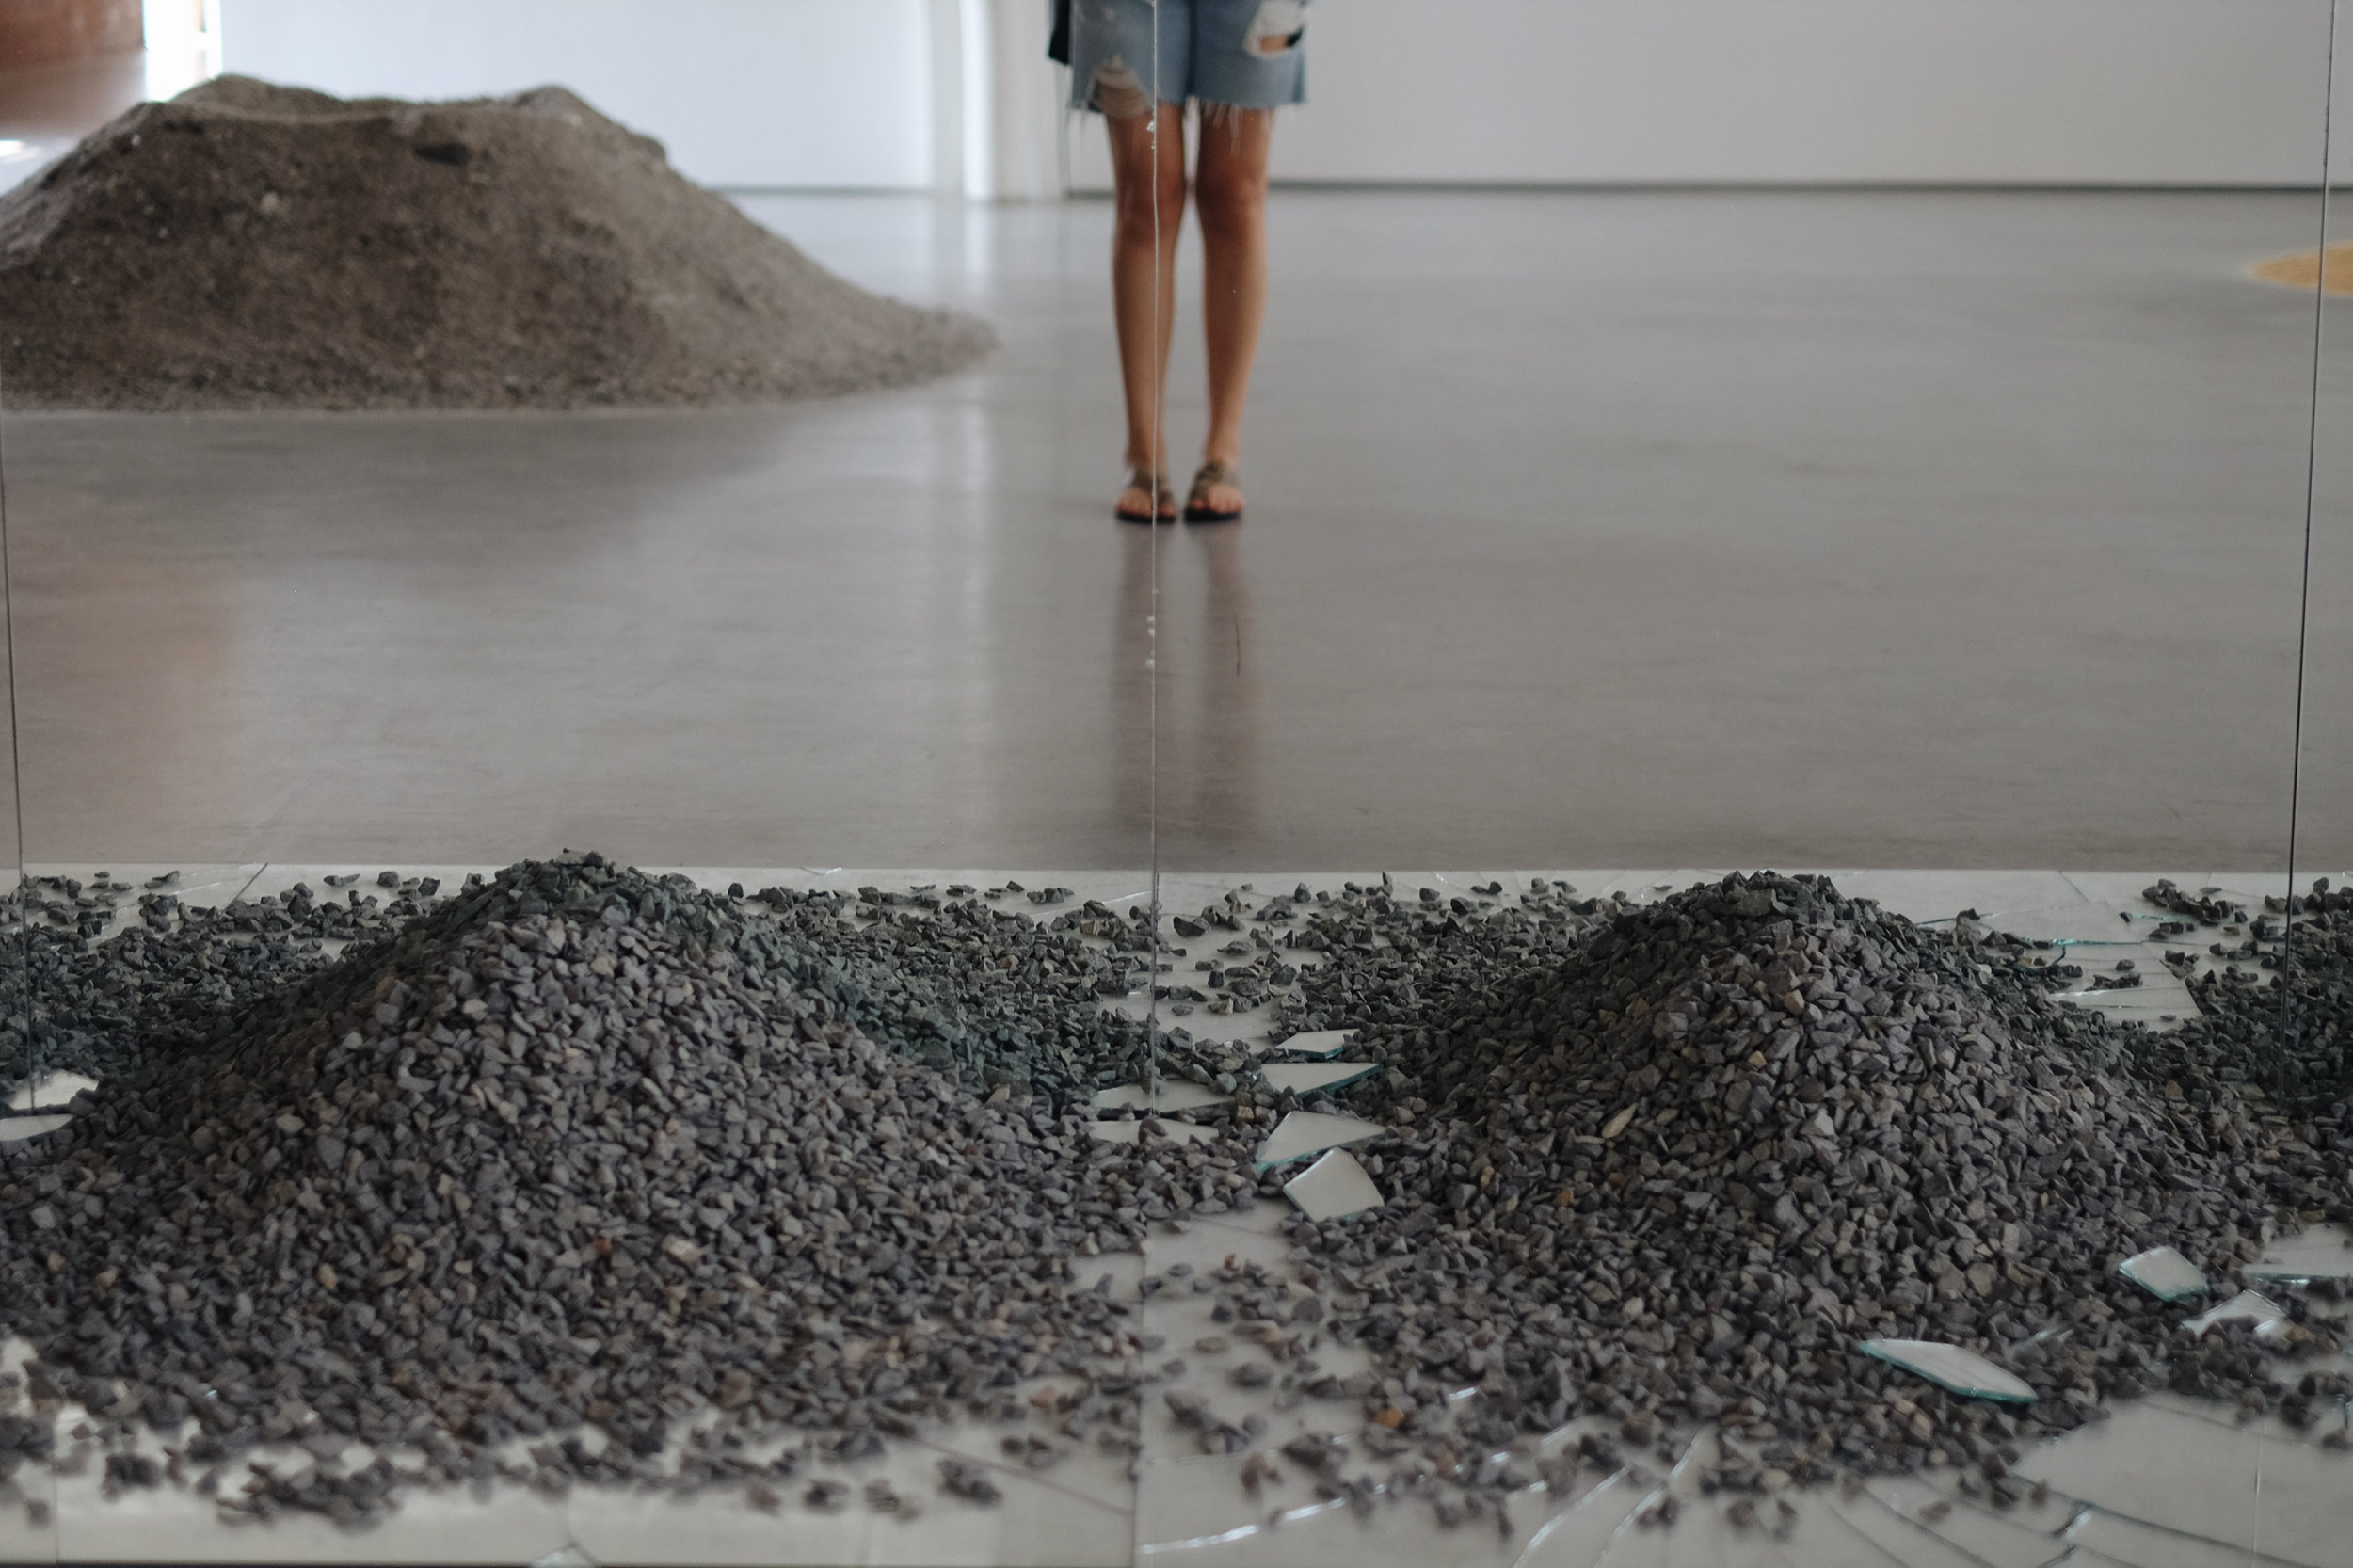 Robert Smithson, Gravel Mirrors with Cracks and Dust, 1968